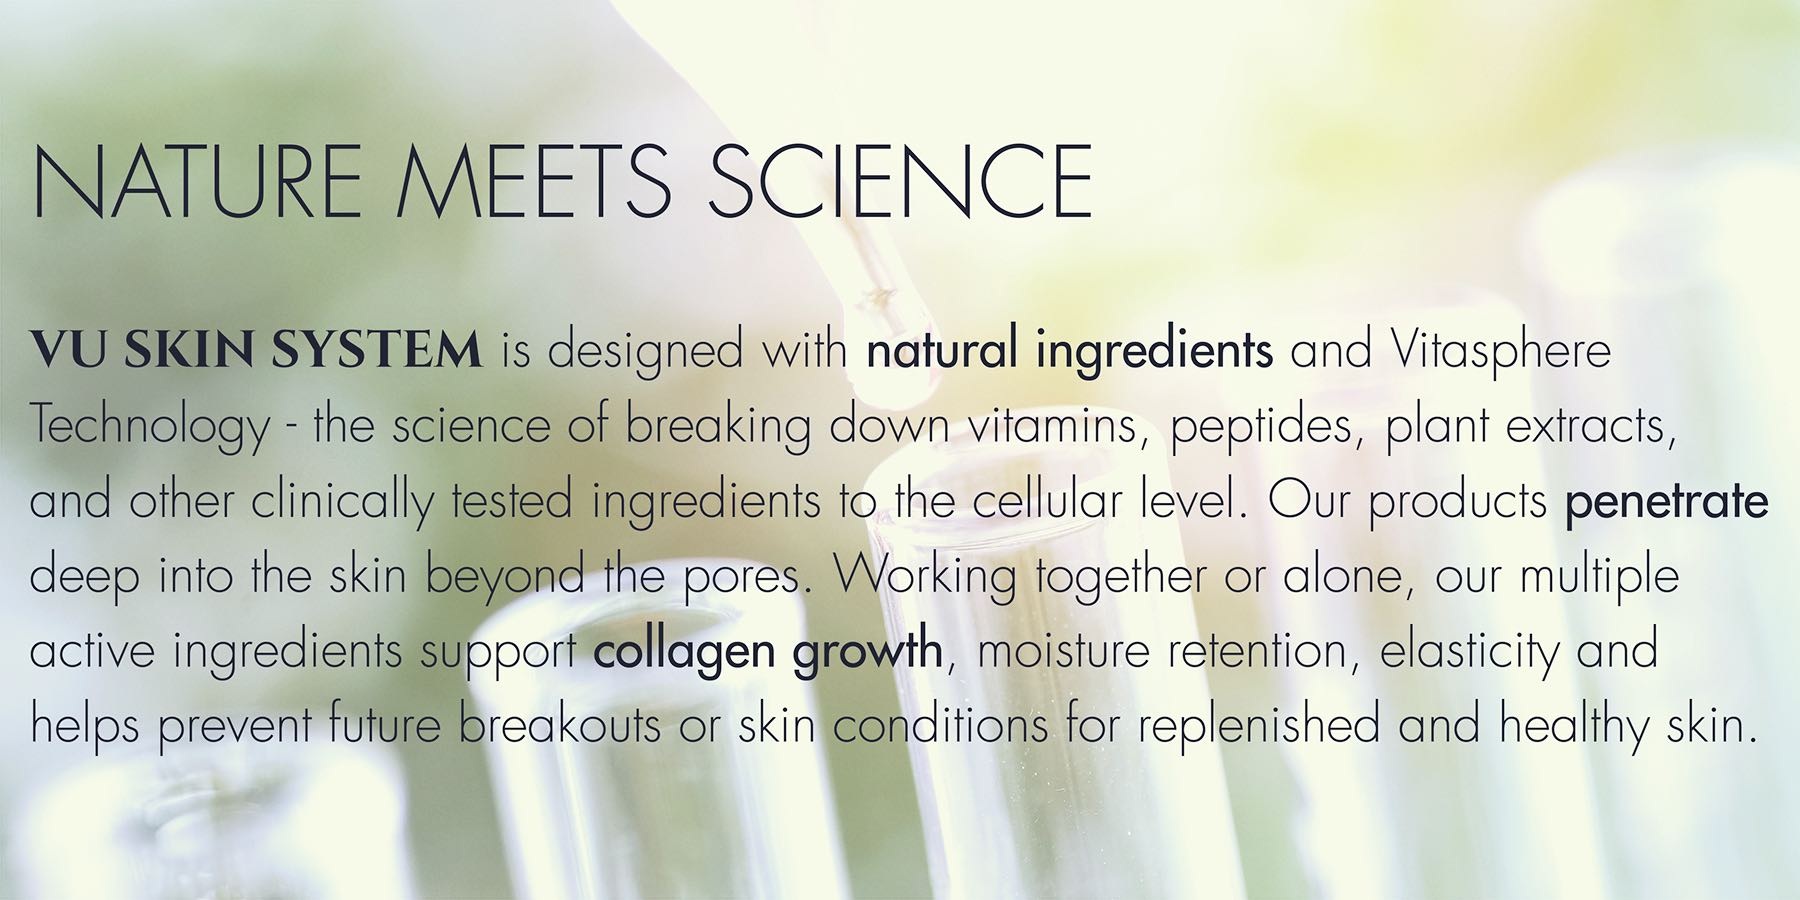 vu skin system is designed with natural ingredients and vitasphere technology -- the science of breaking down vitamins, peptides, plant extracts and other clinically tested ingredients to the cellular level.